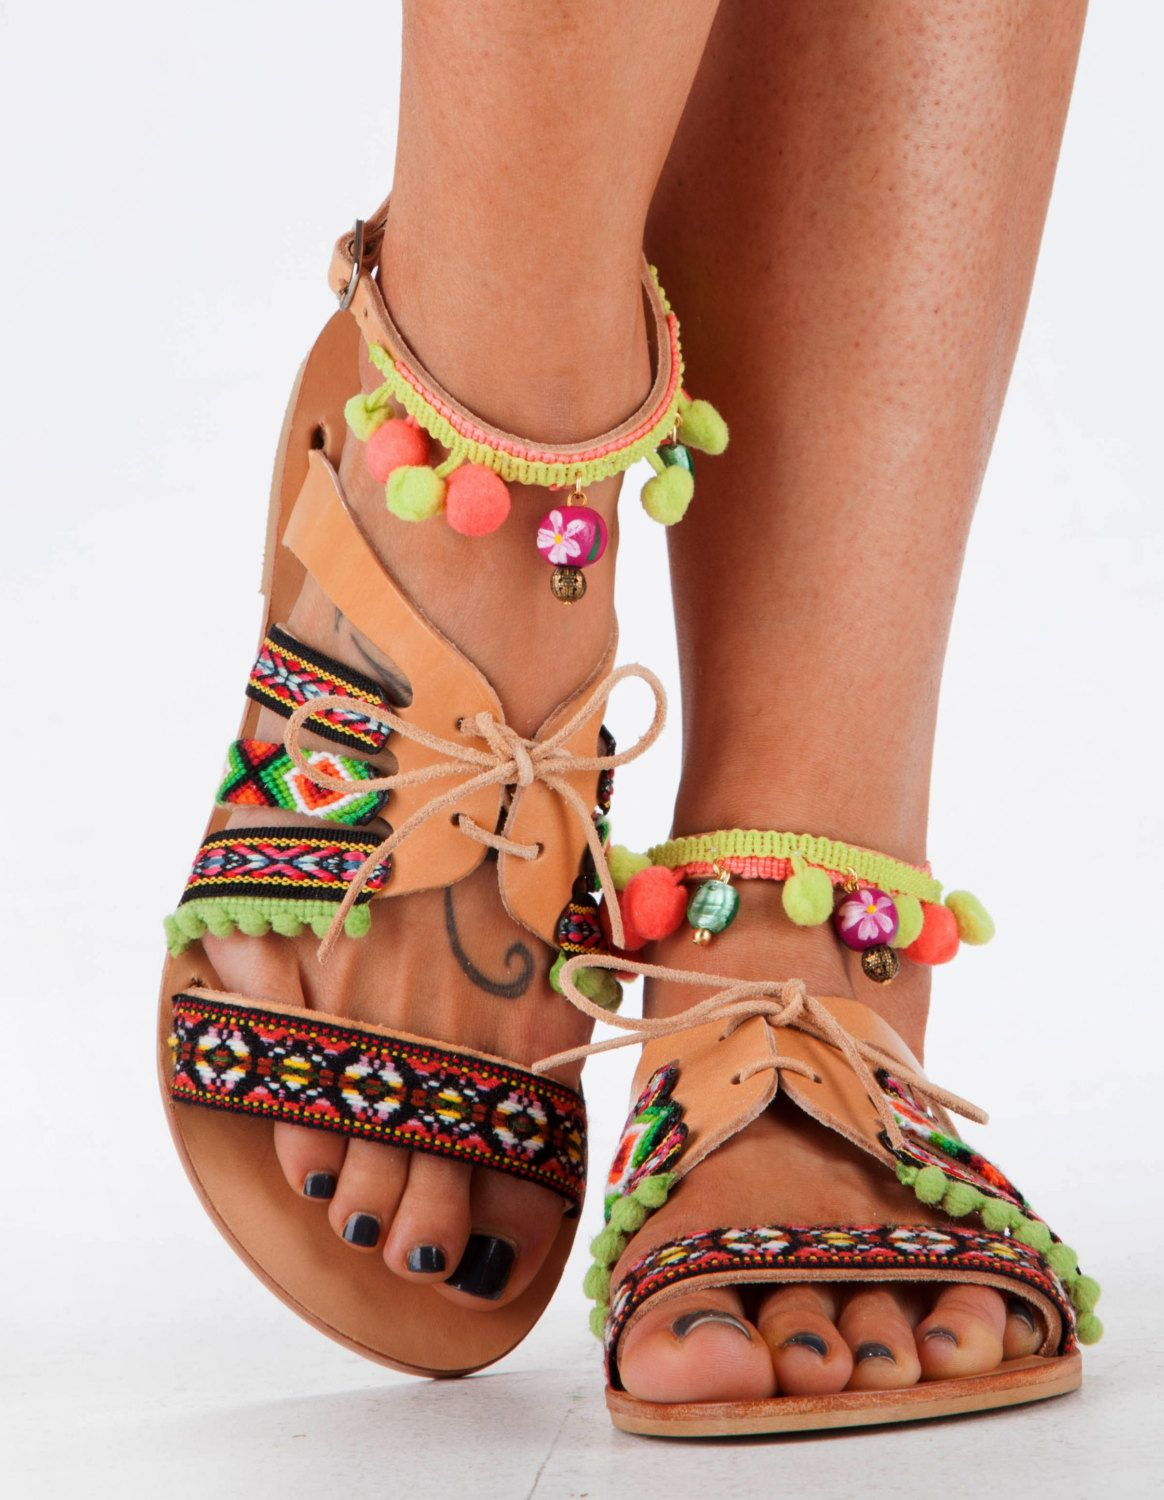 Items similar to Leather Sandals, Handmade Sandals, Mexican Style Sandals